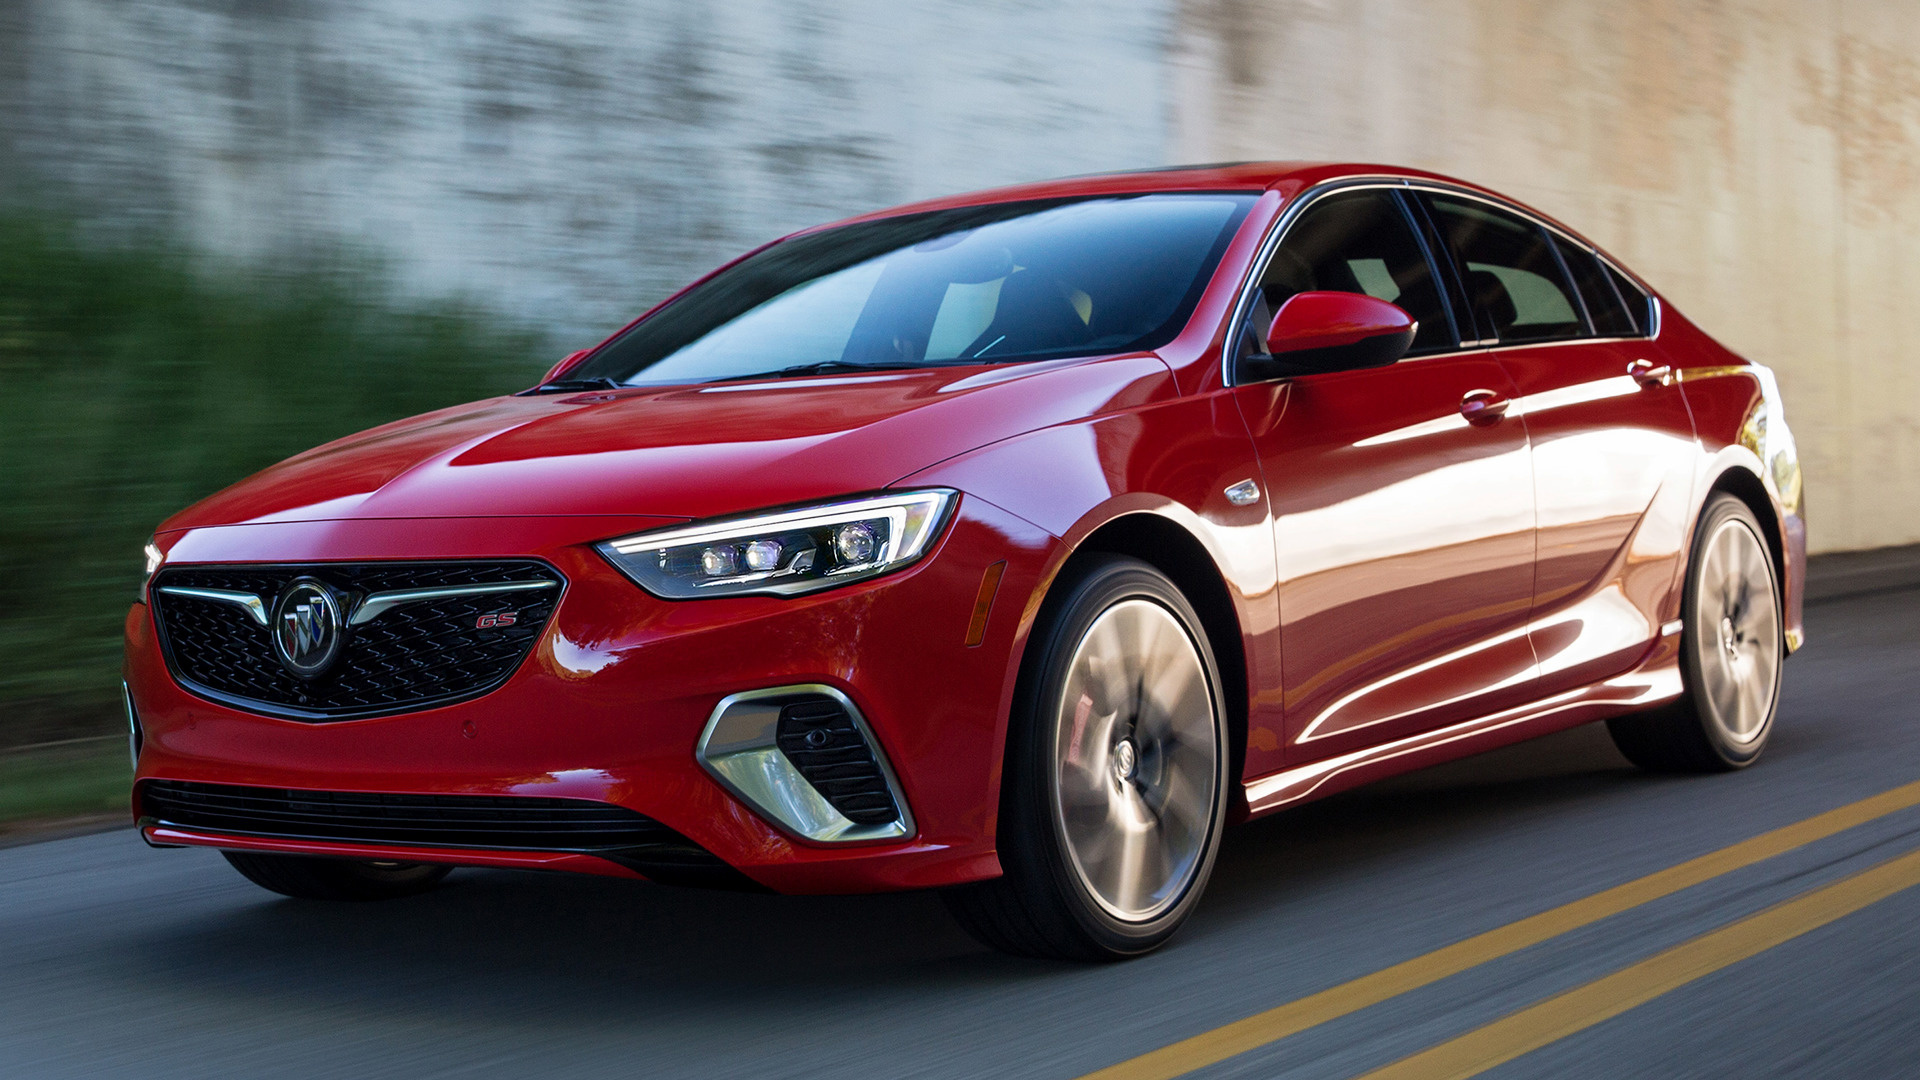 2018 Buick Regal GS - Wallpapers and HD Images | Car Pixel